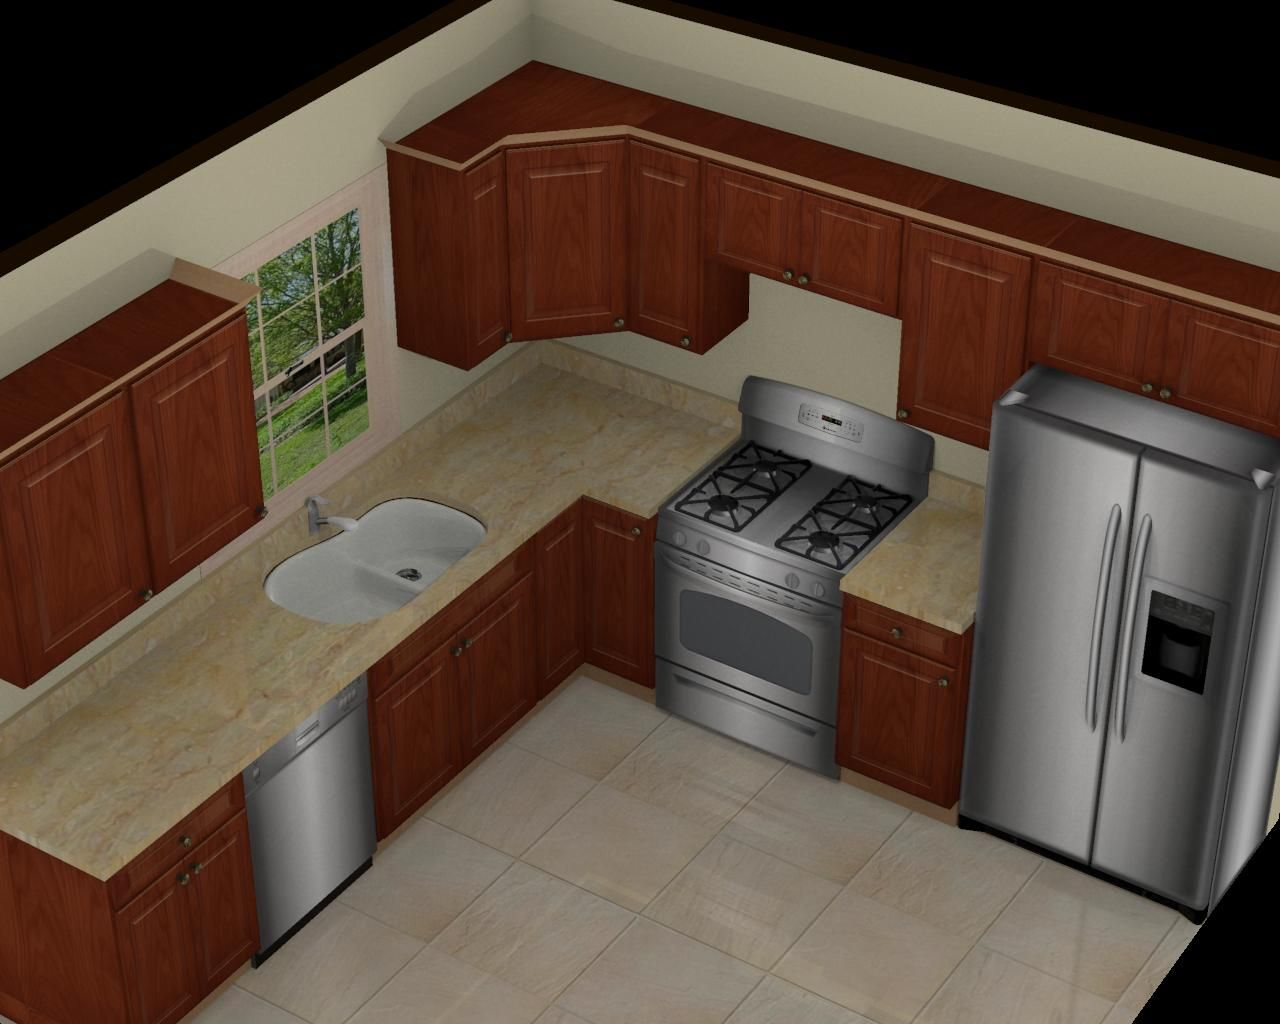 Superb Kitchen: Great 10x10 3D Kitchen Design With Brown Cabinet, Beige L ..